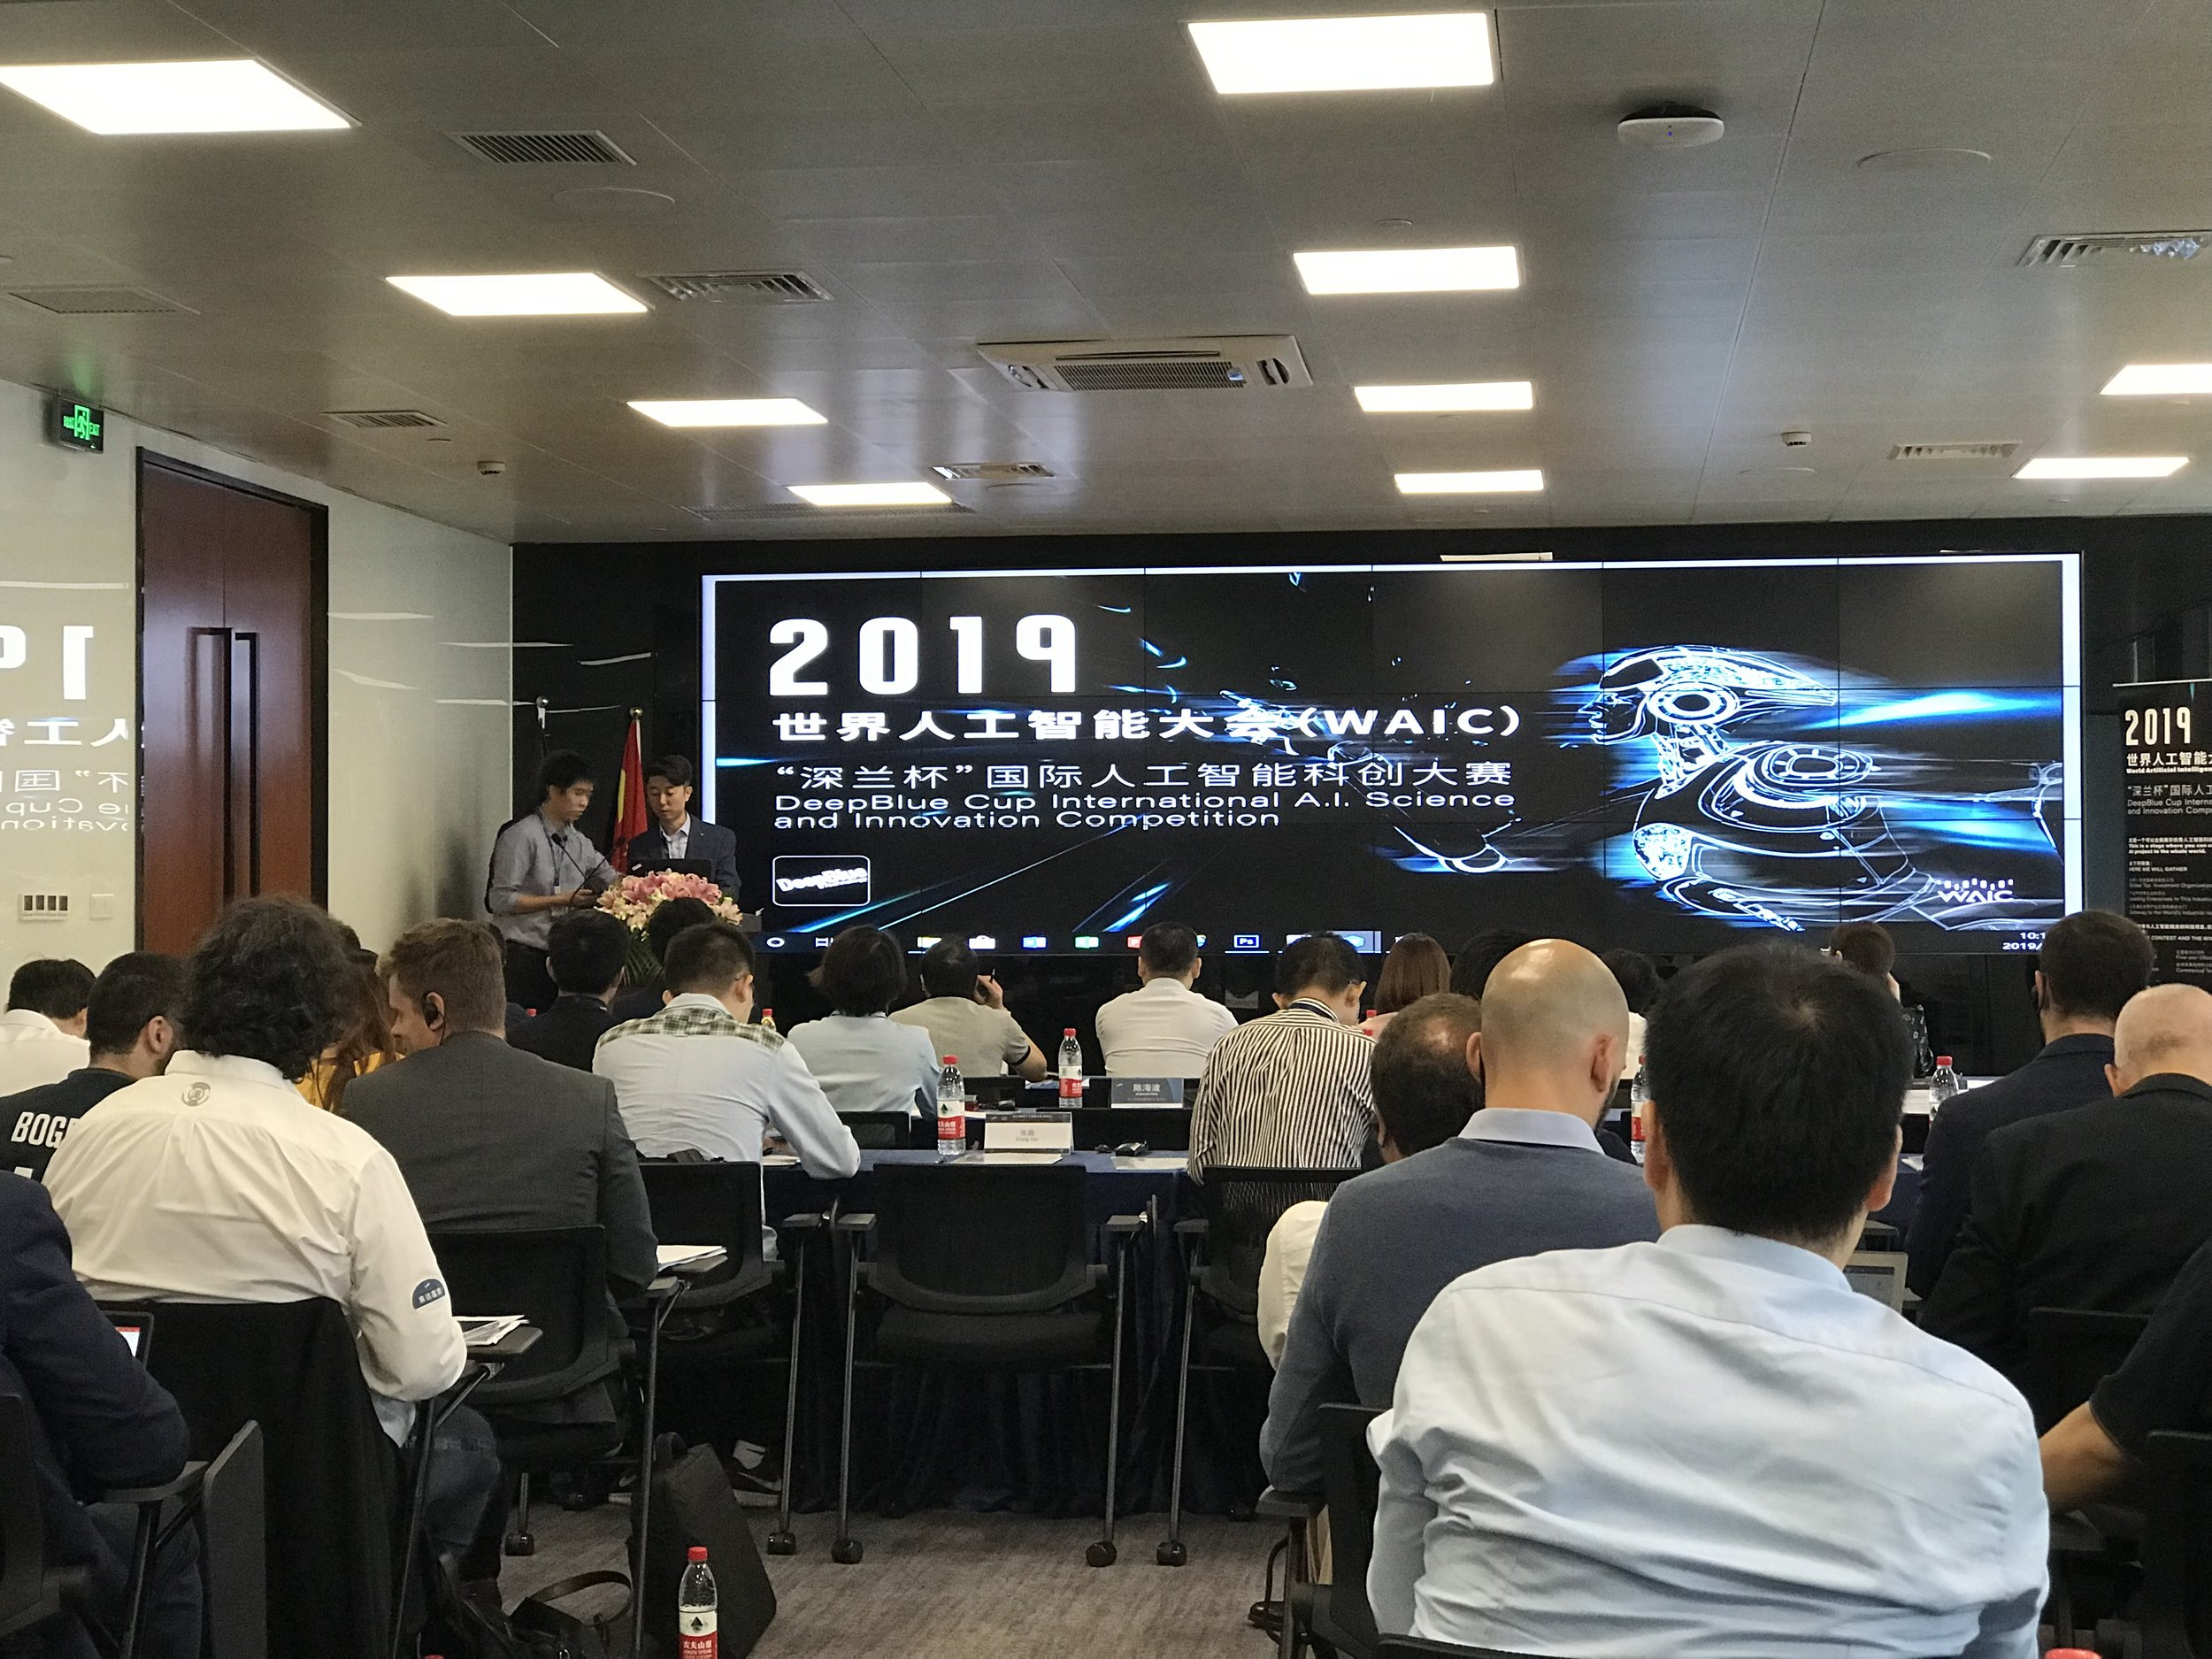 The DeepBlue Cup International AI Science and Innovation Competition was part of World Artificial Intelligence Conference (WAIF) 2019, taking place Aug 29 - 31 in Shanghai.